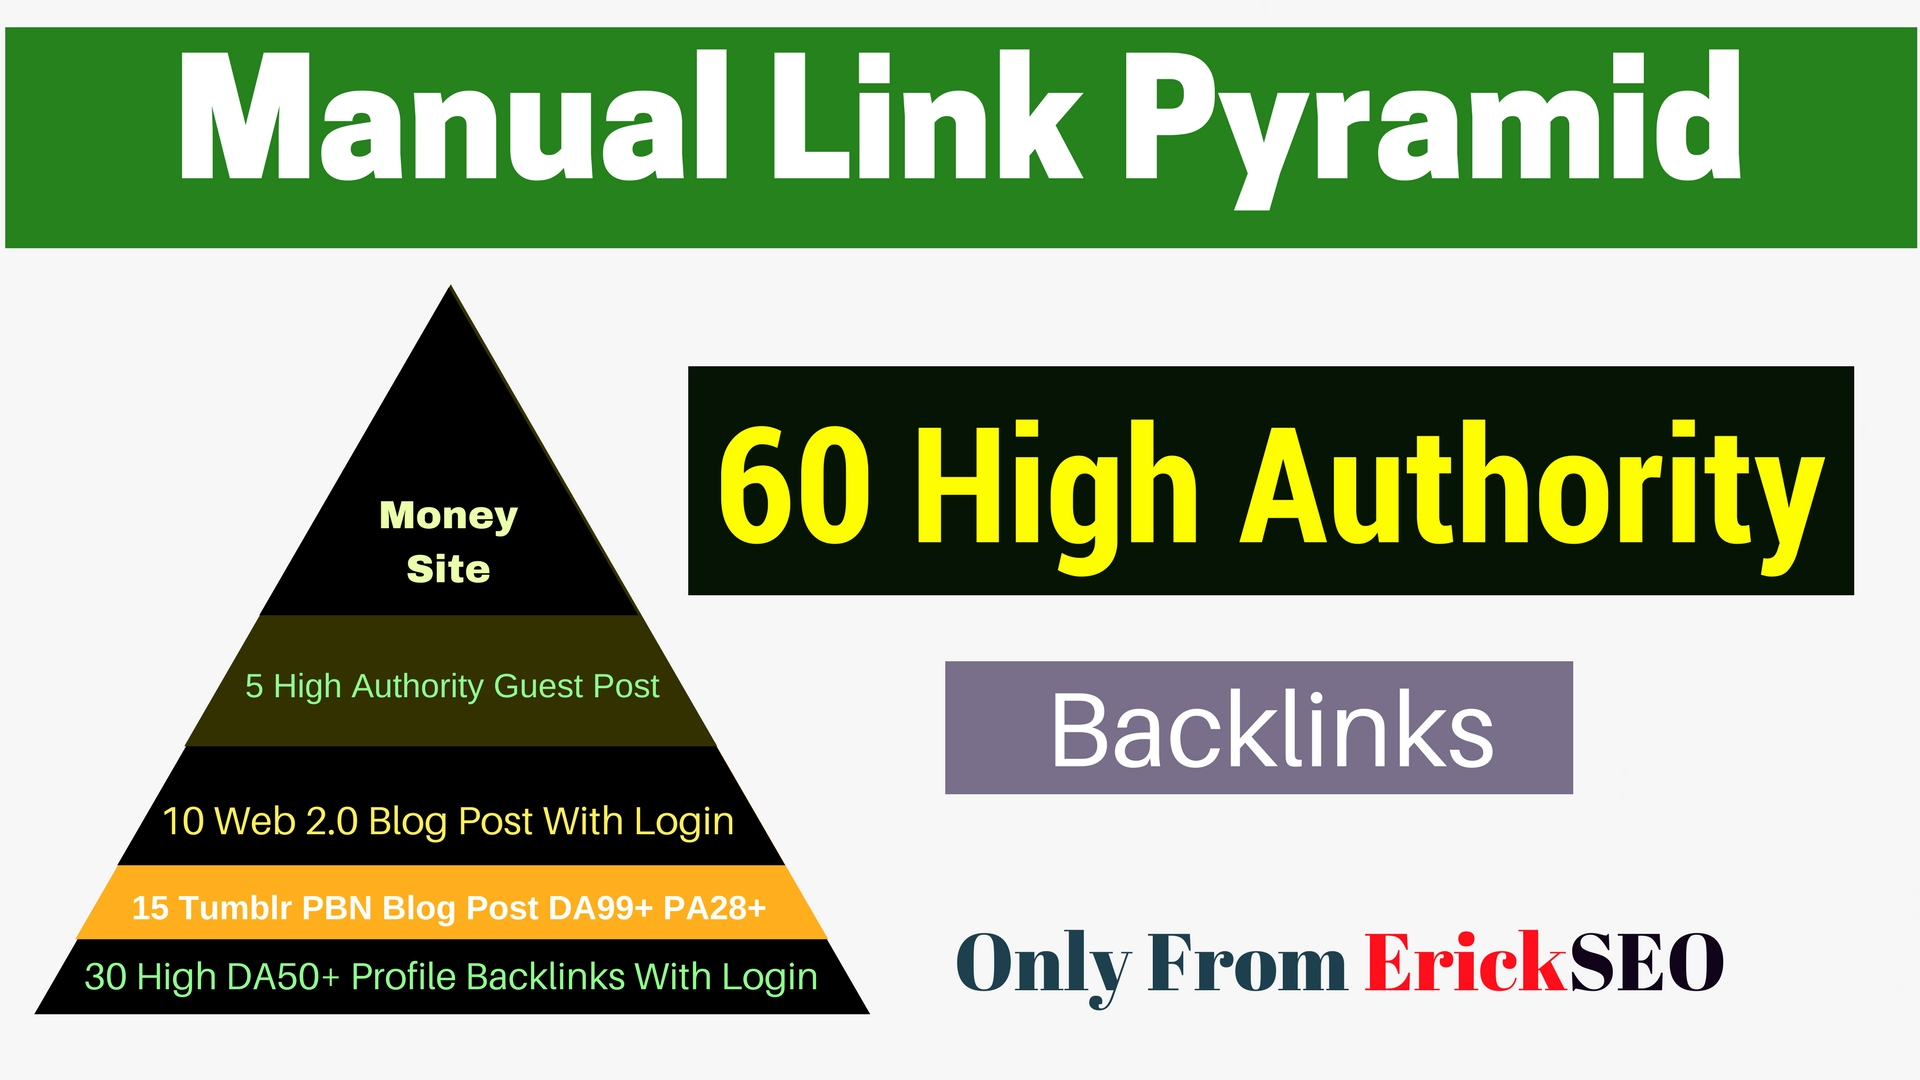 Manual Link Pyramid With 60 High Authority Backlinks